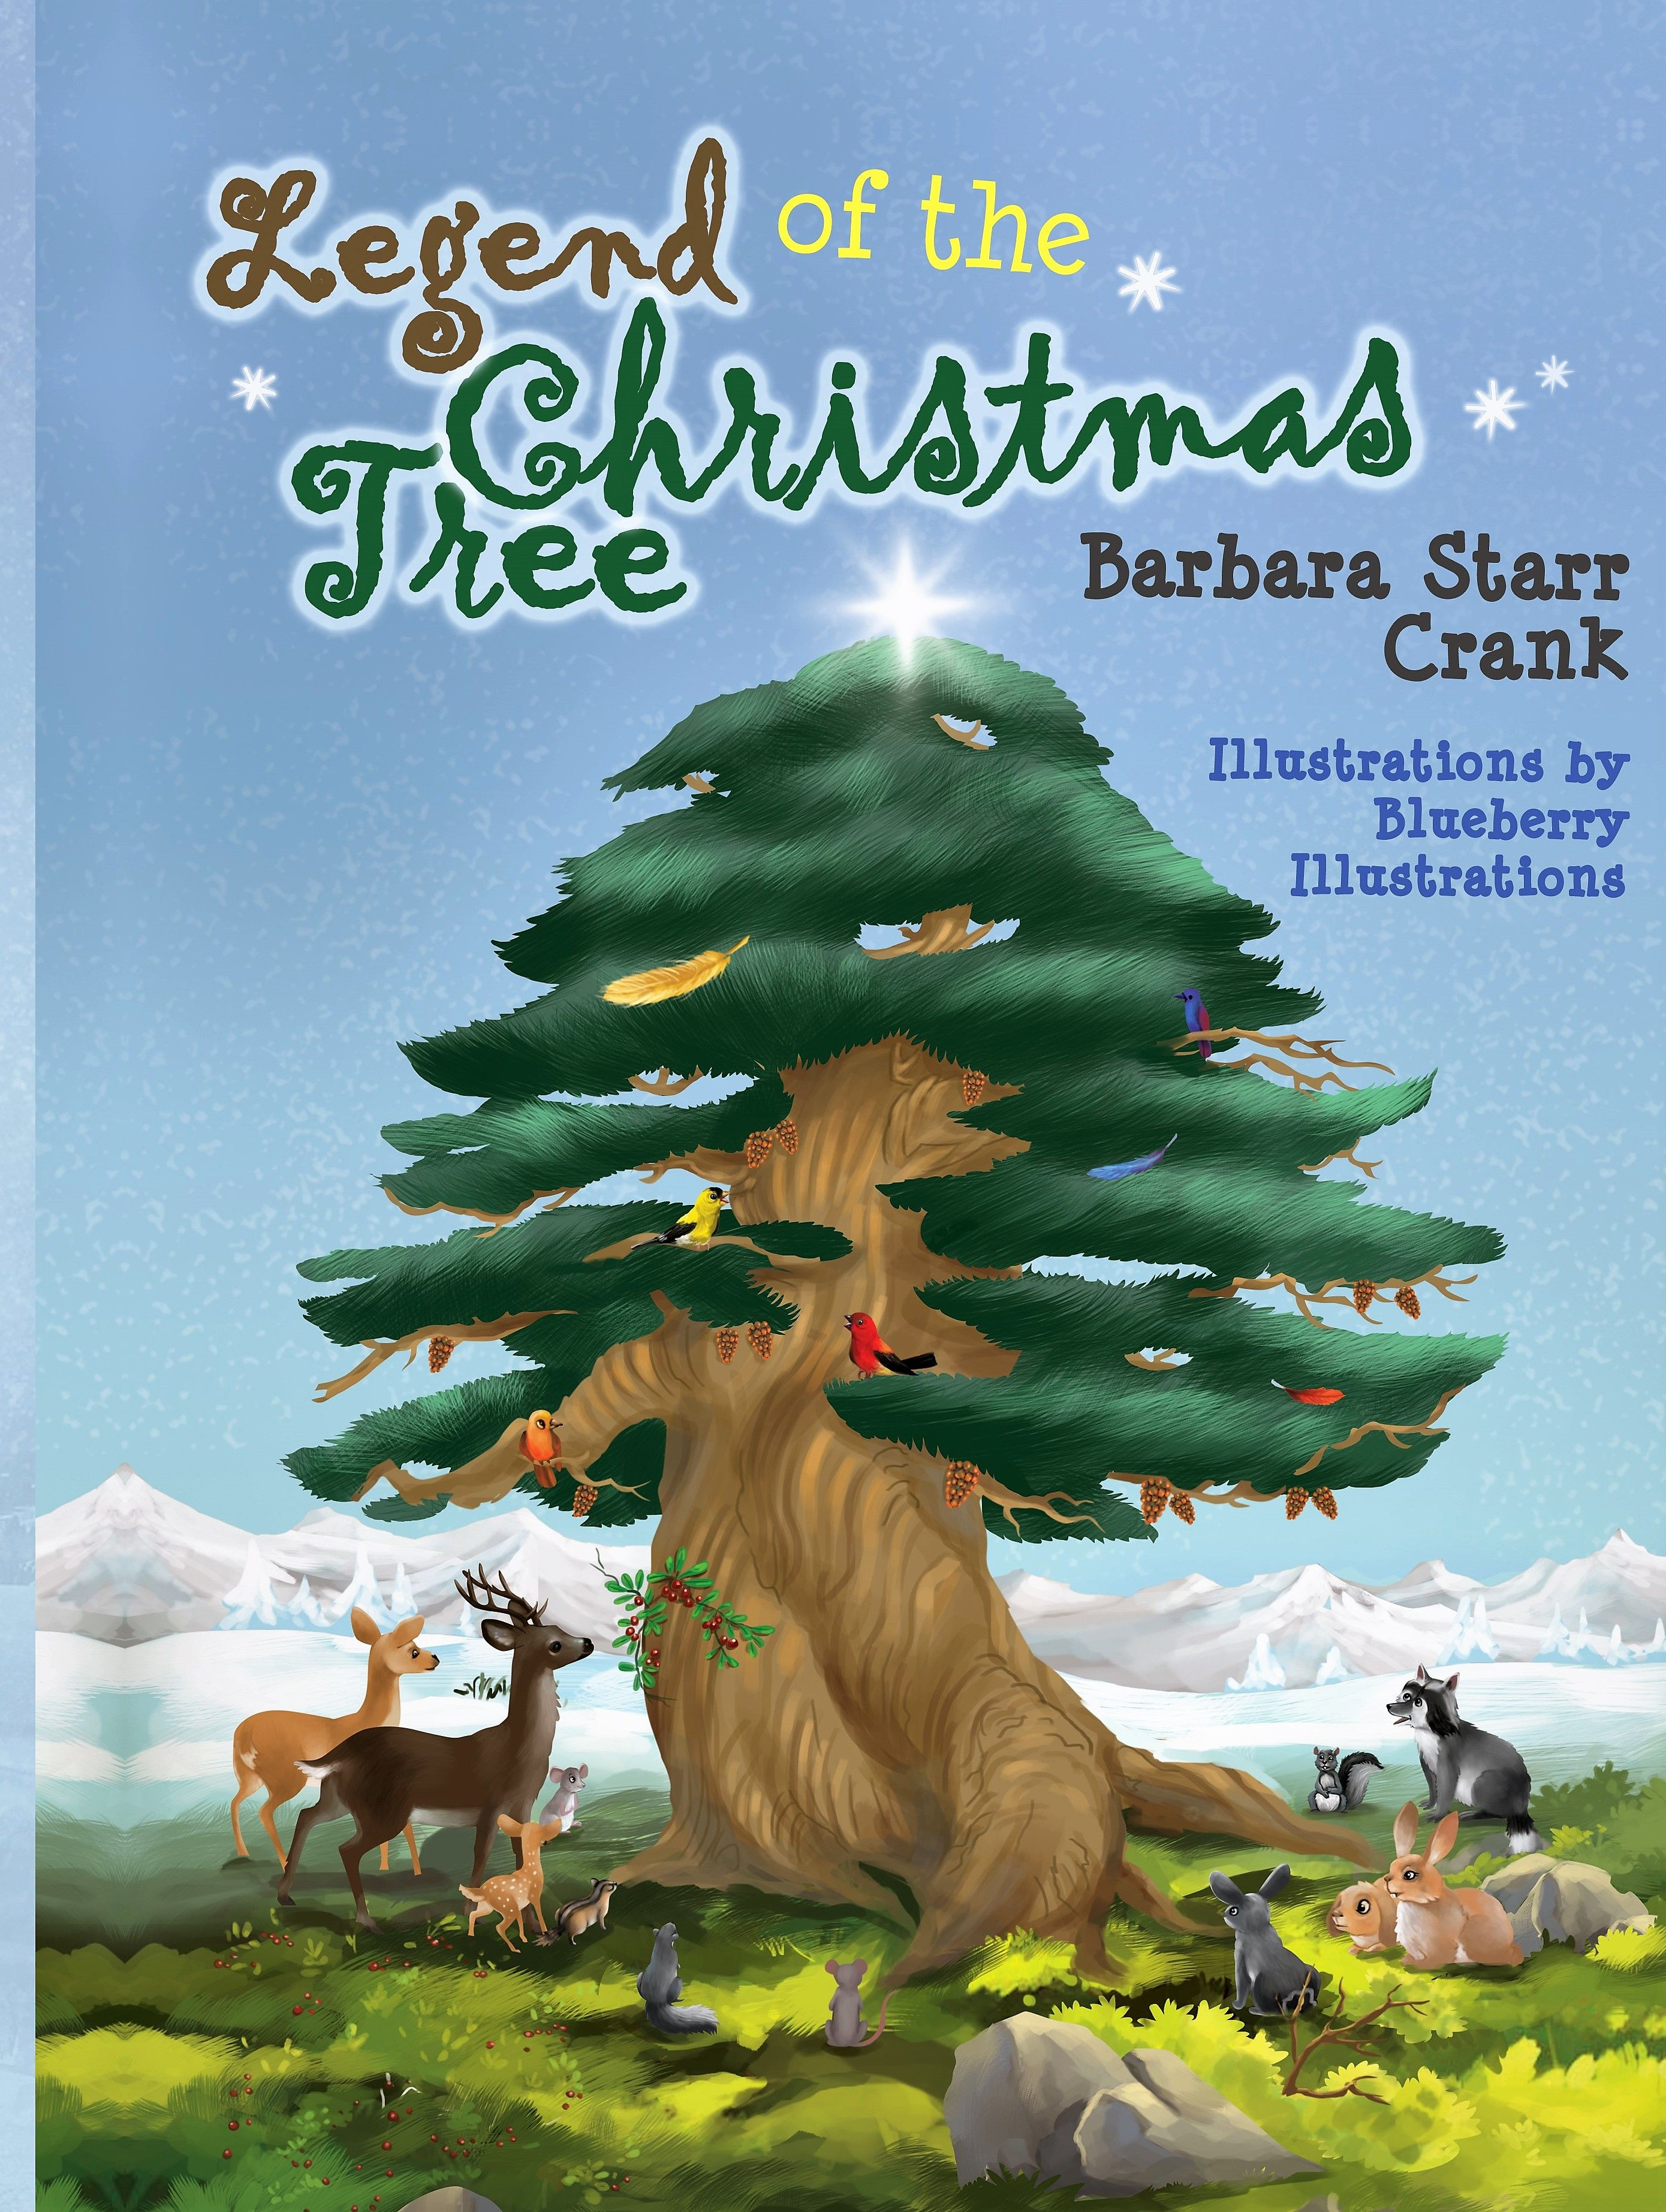 Pin by starrcrank on Books for Kids | Christmas tree, A ...